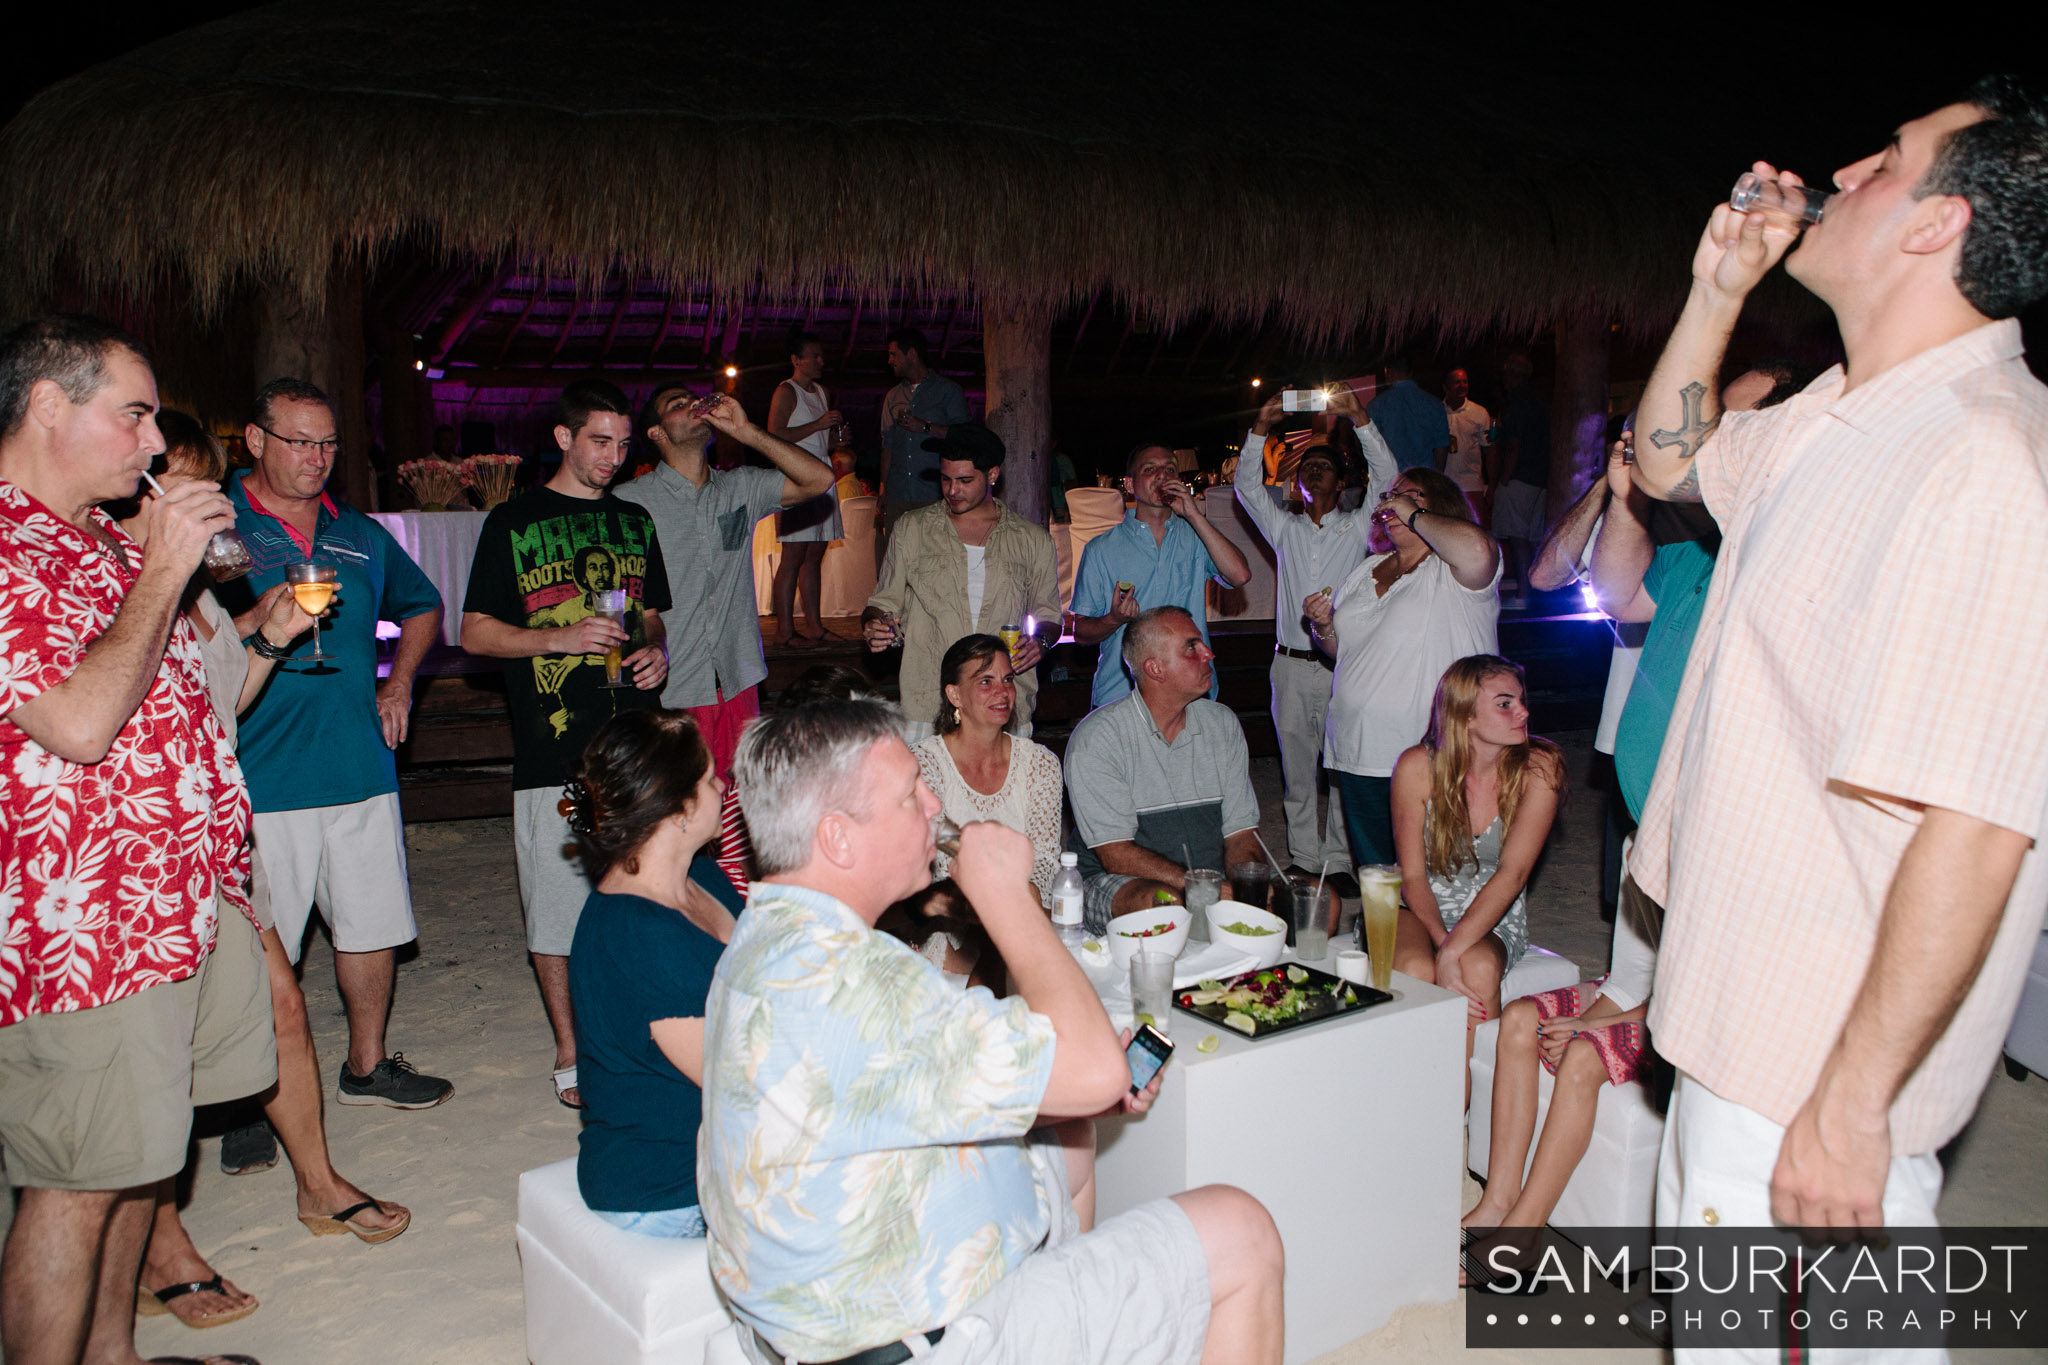 samburkardt-mexico-beach-wedding-playa-mujeres_0014.jpg